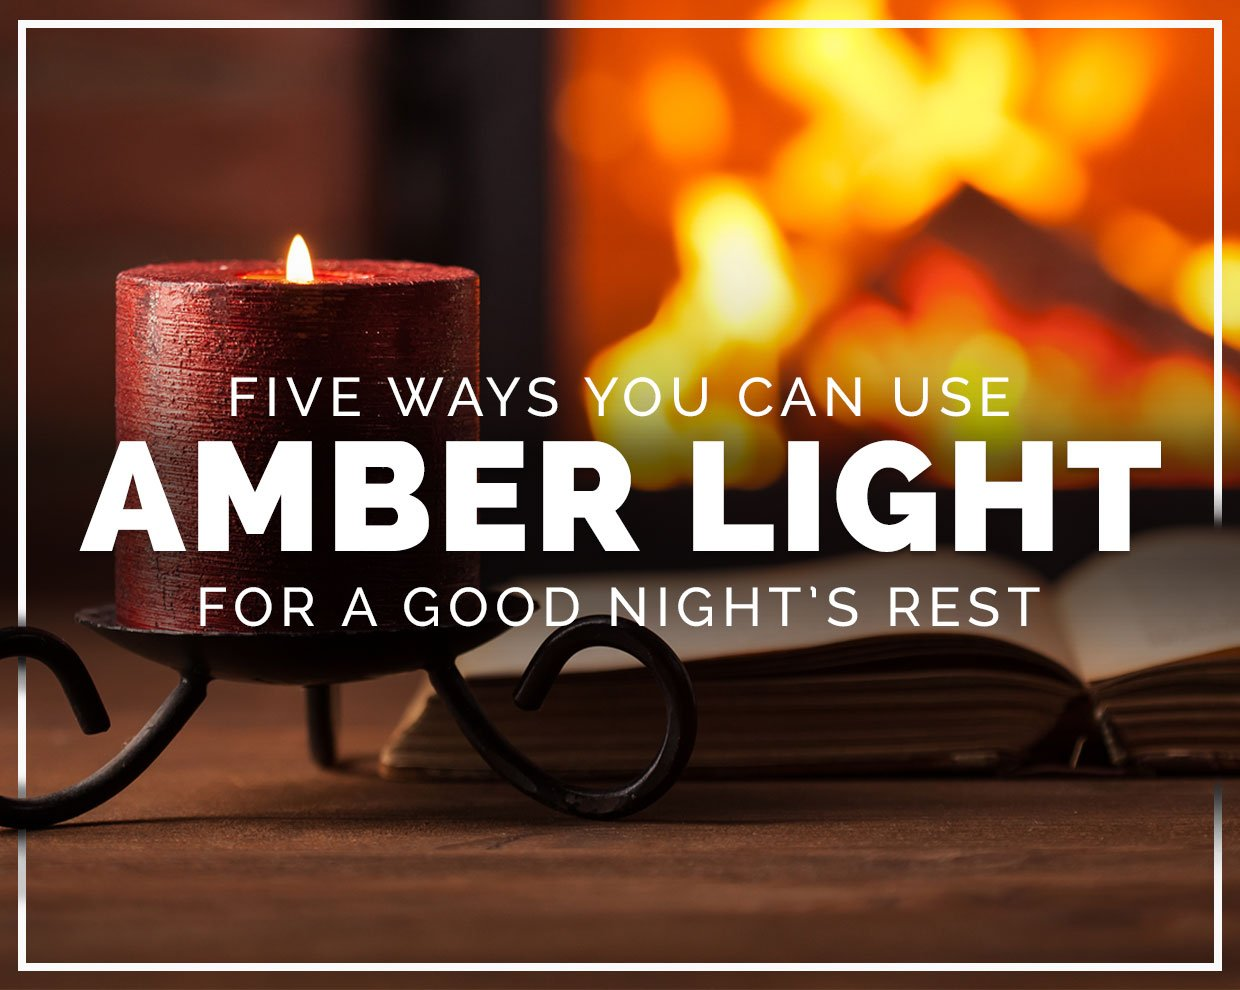 Five ways you can use amber light for a good night's rest